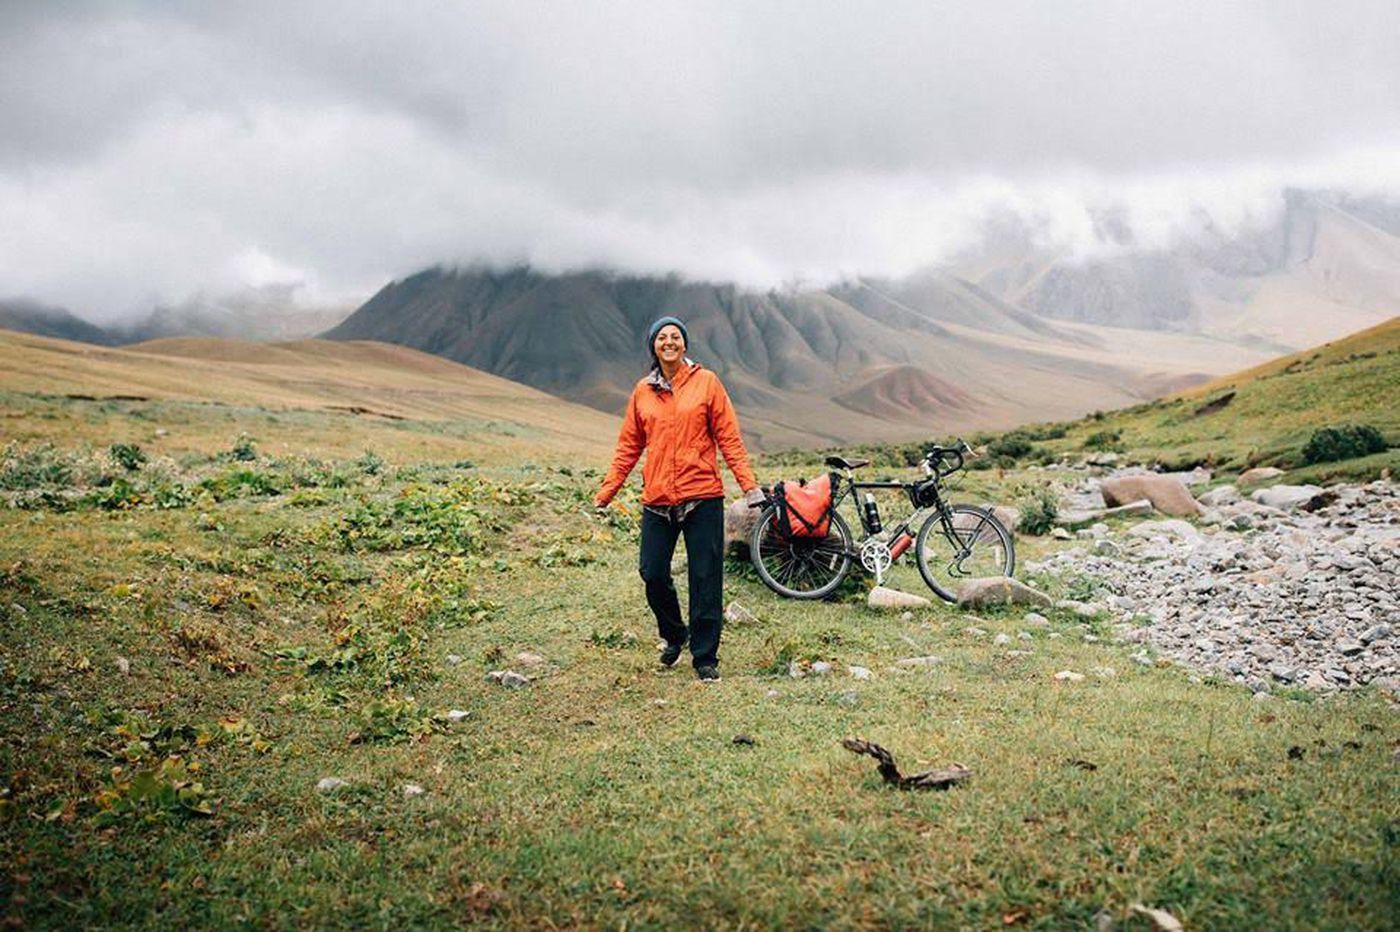 Nicole Heker during her 507-day, 6,351-mile solo journey via bicycle from the northern Thai city of Chiang Mai to the southern Portuguese city of Lagos.